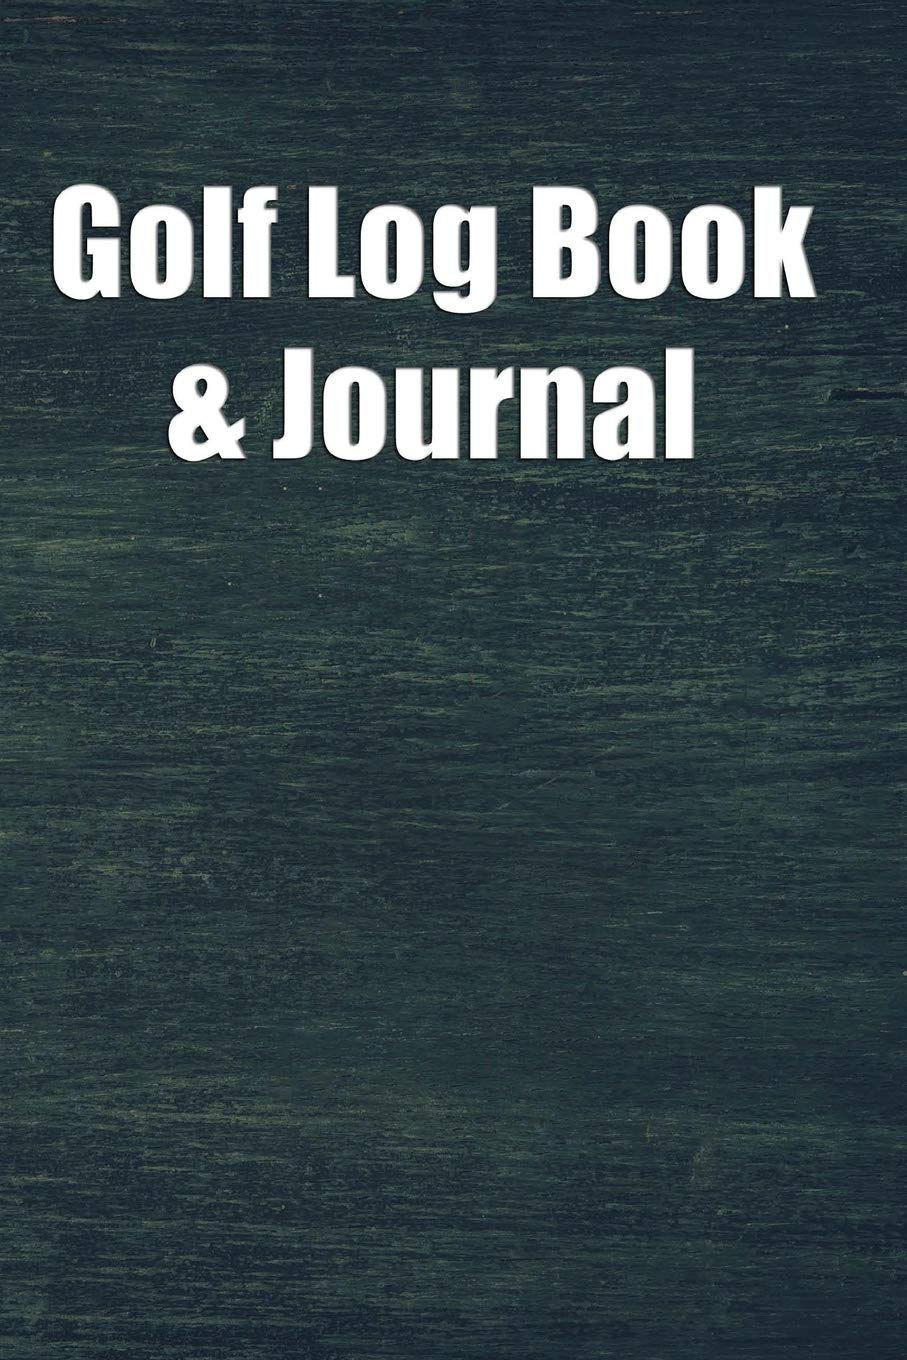 Image OfGolf Log Book & Journal: Golf Score Keeper Book, Golf Club Yardage Book, Golf Yardage Notepad, Including Blank Lined Pages...